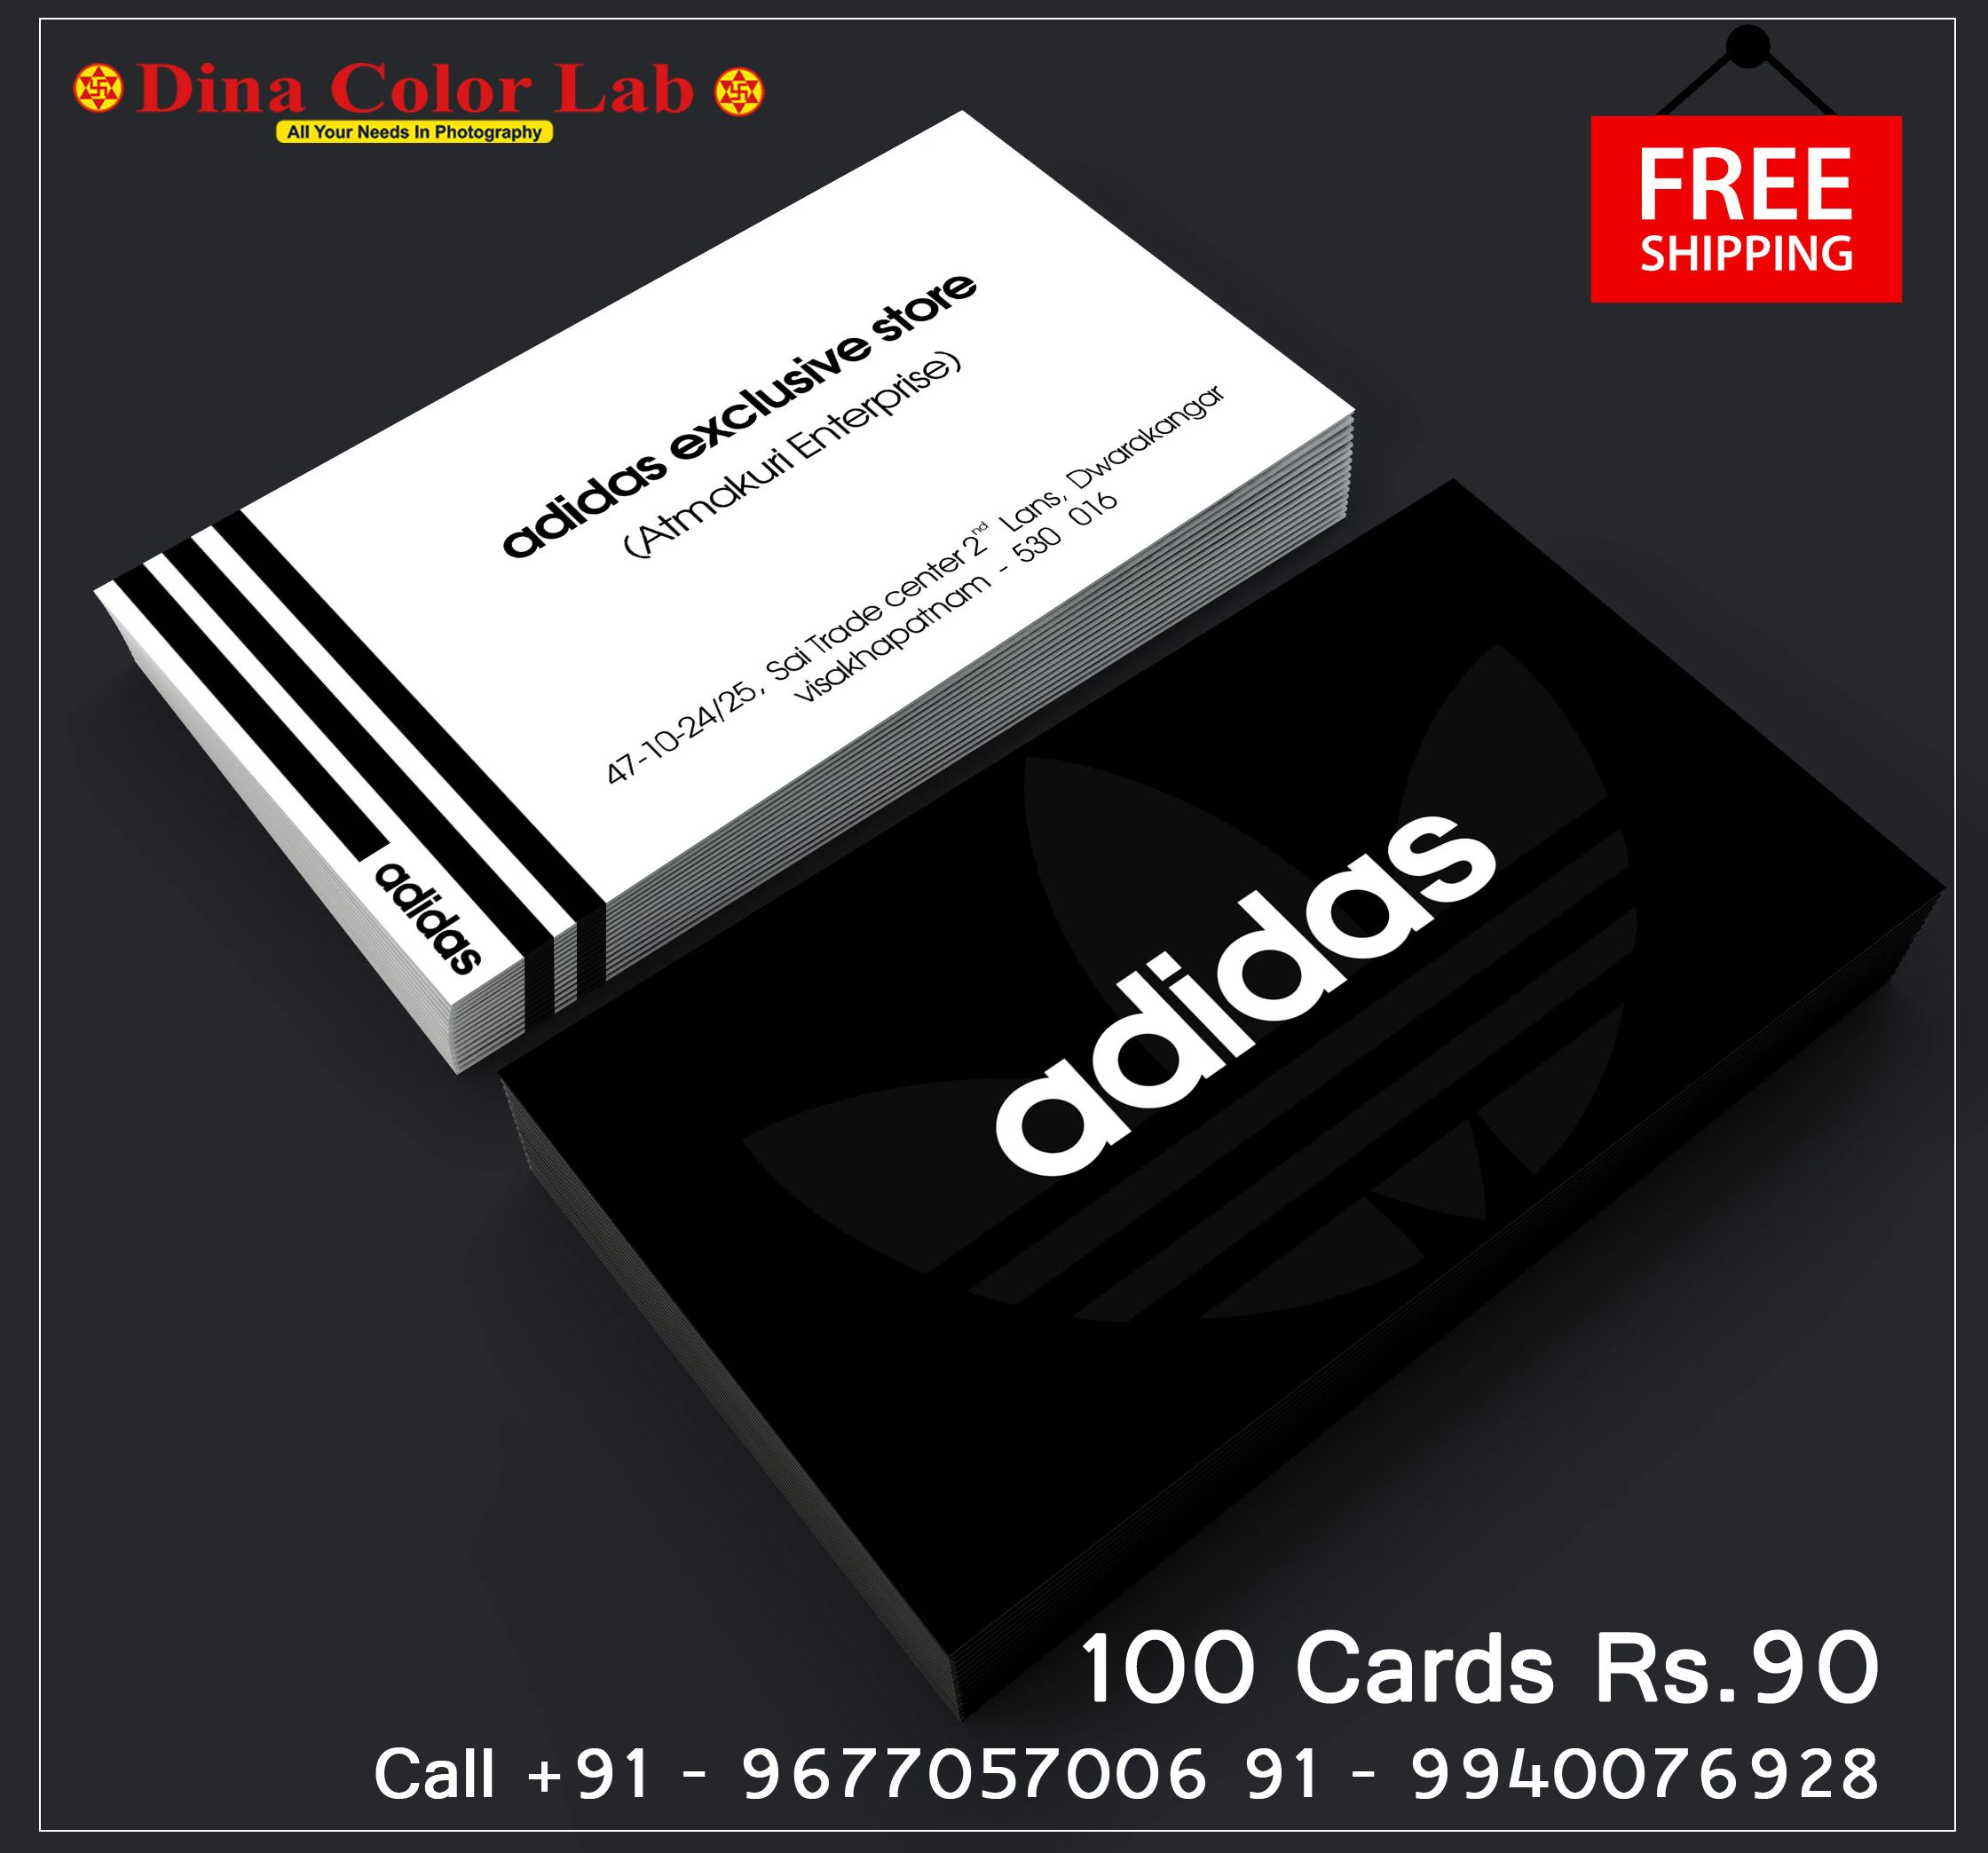 100 Business Cards At 90 Free Shipping In 2020